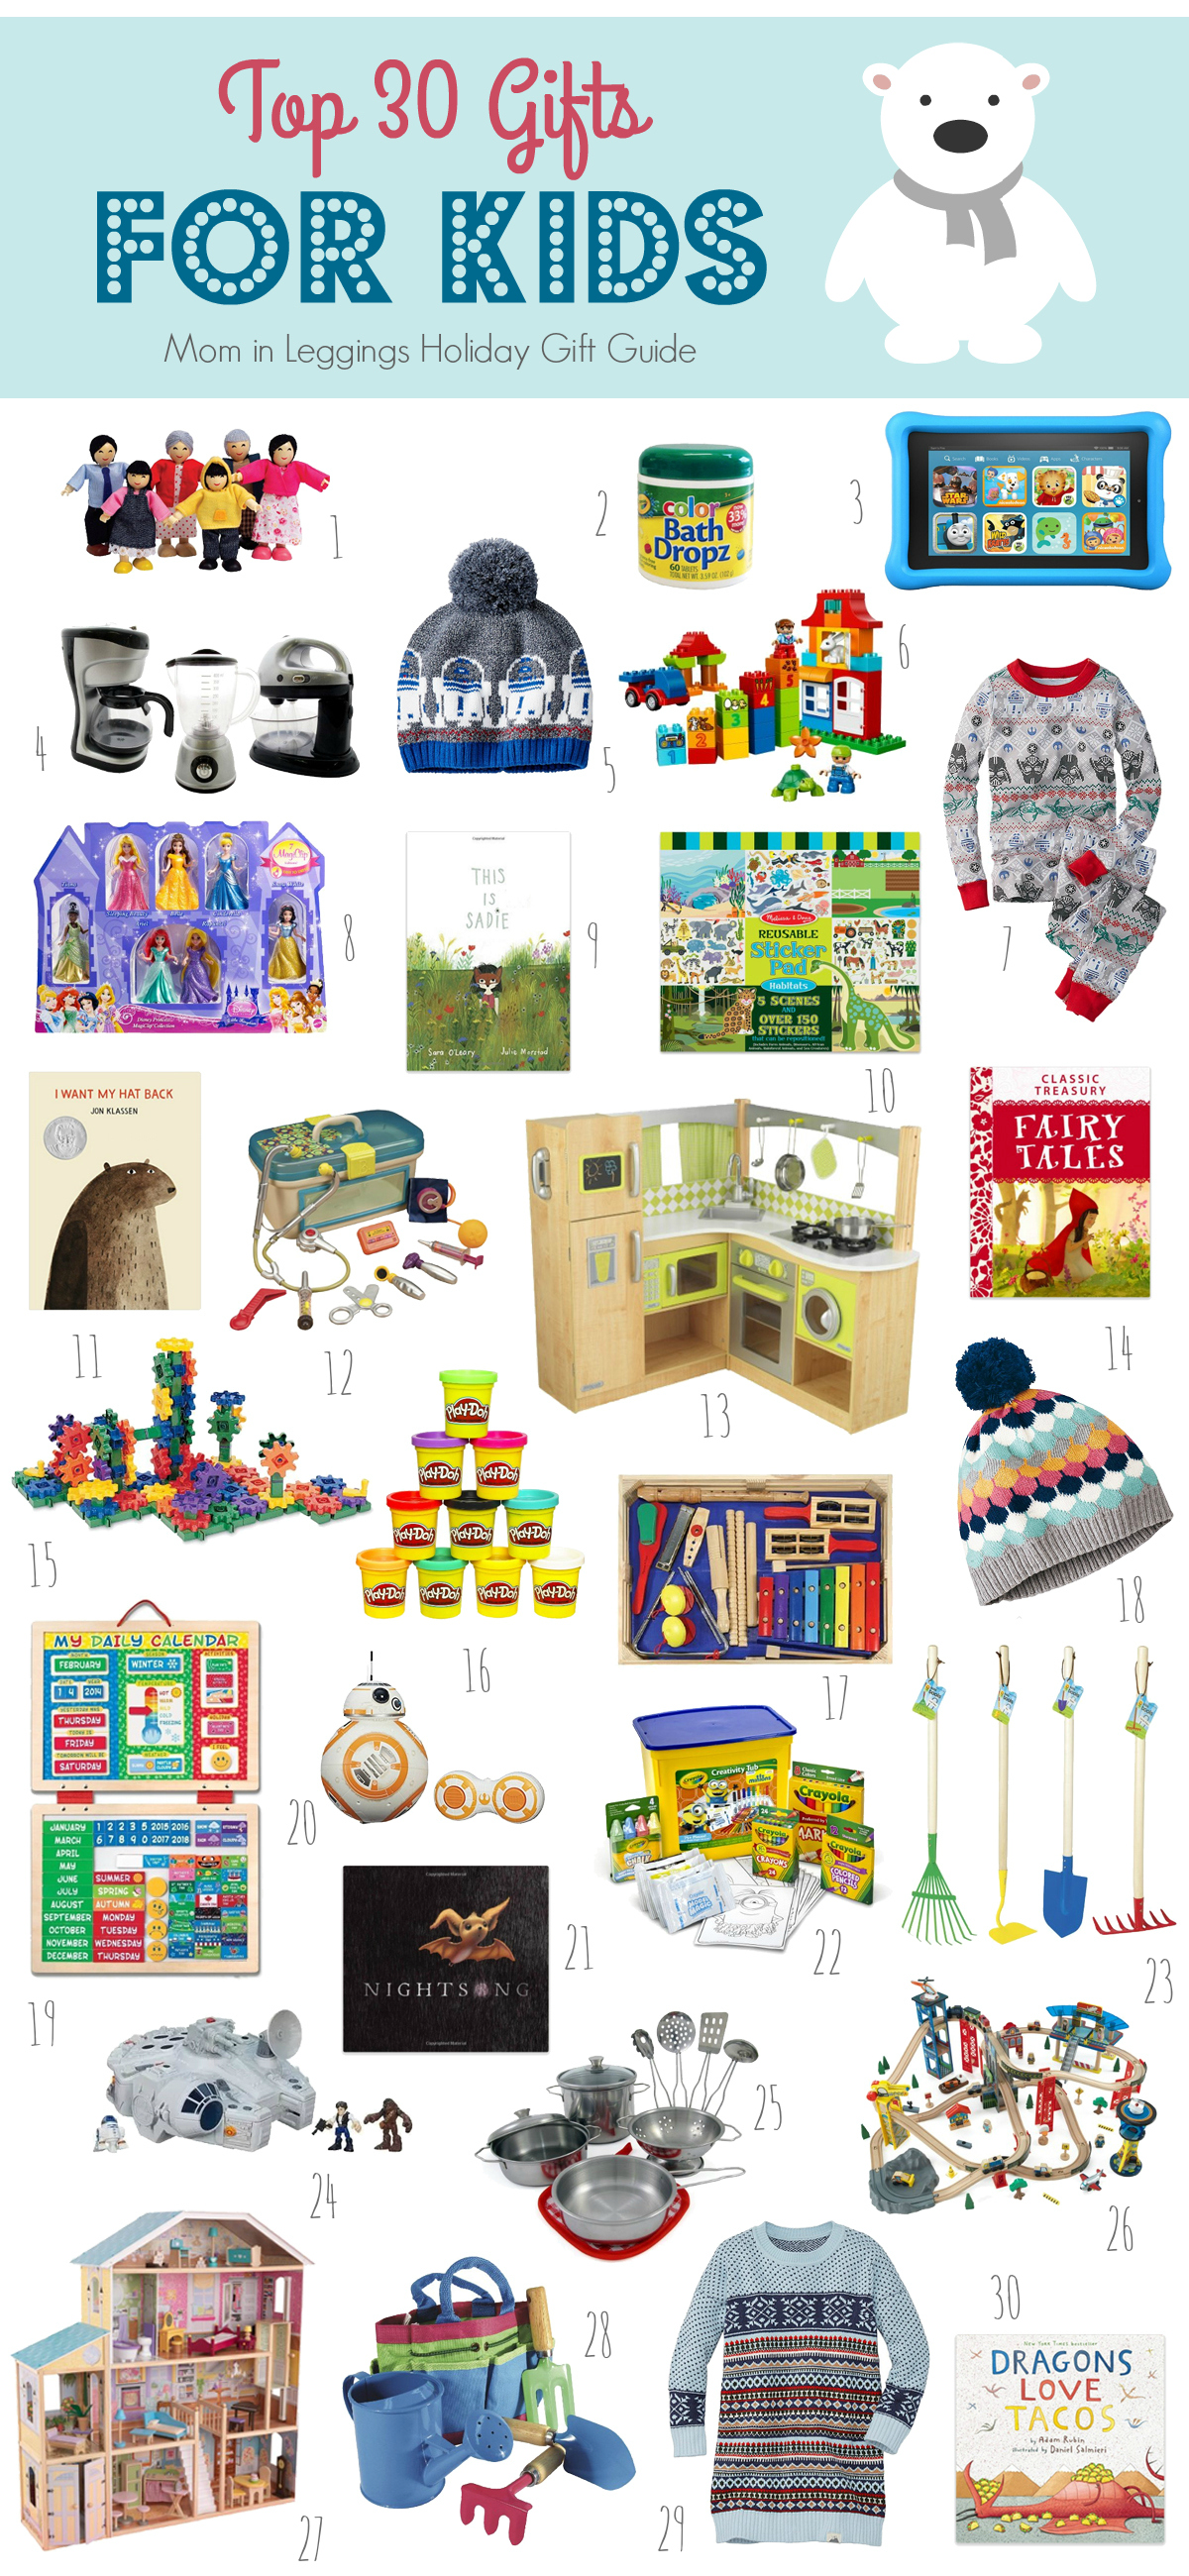 Top 30 Gifts for Kids